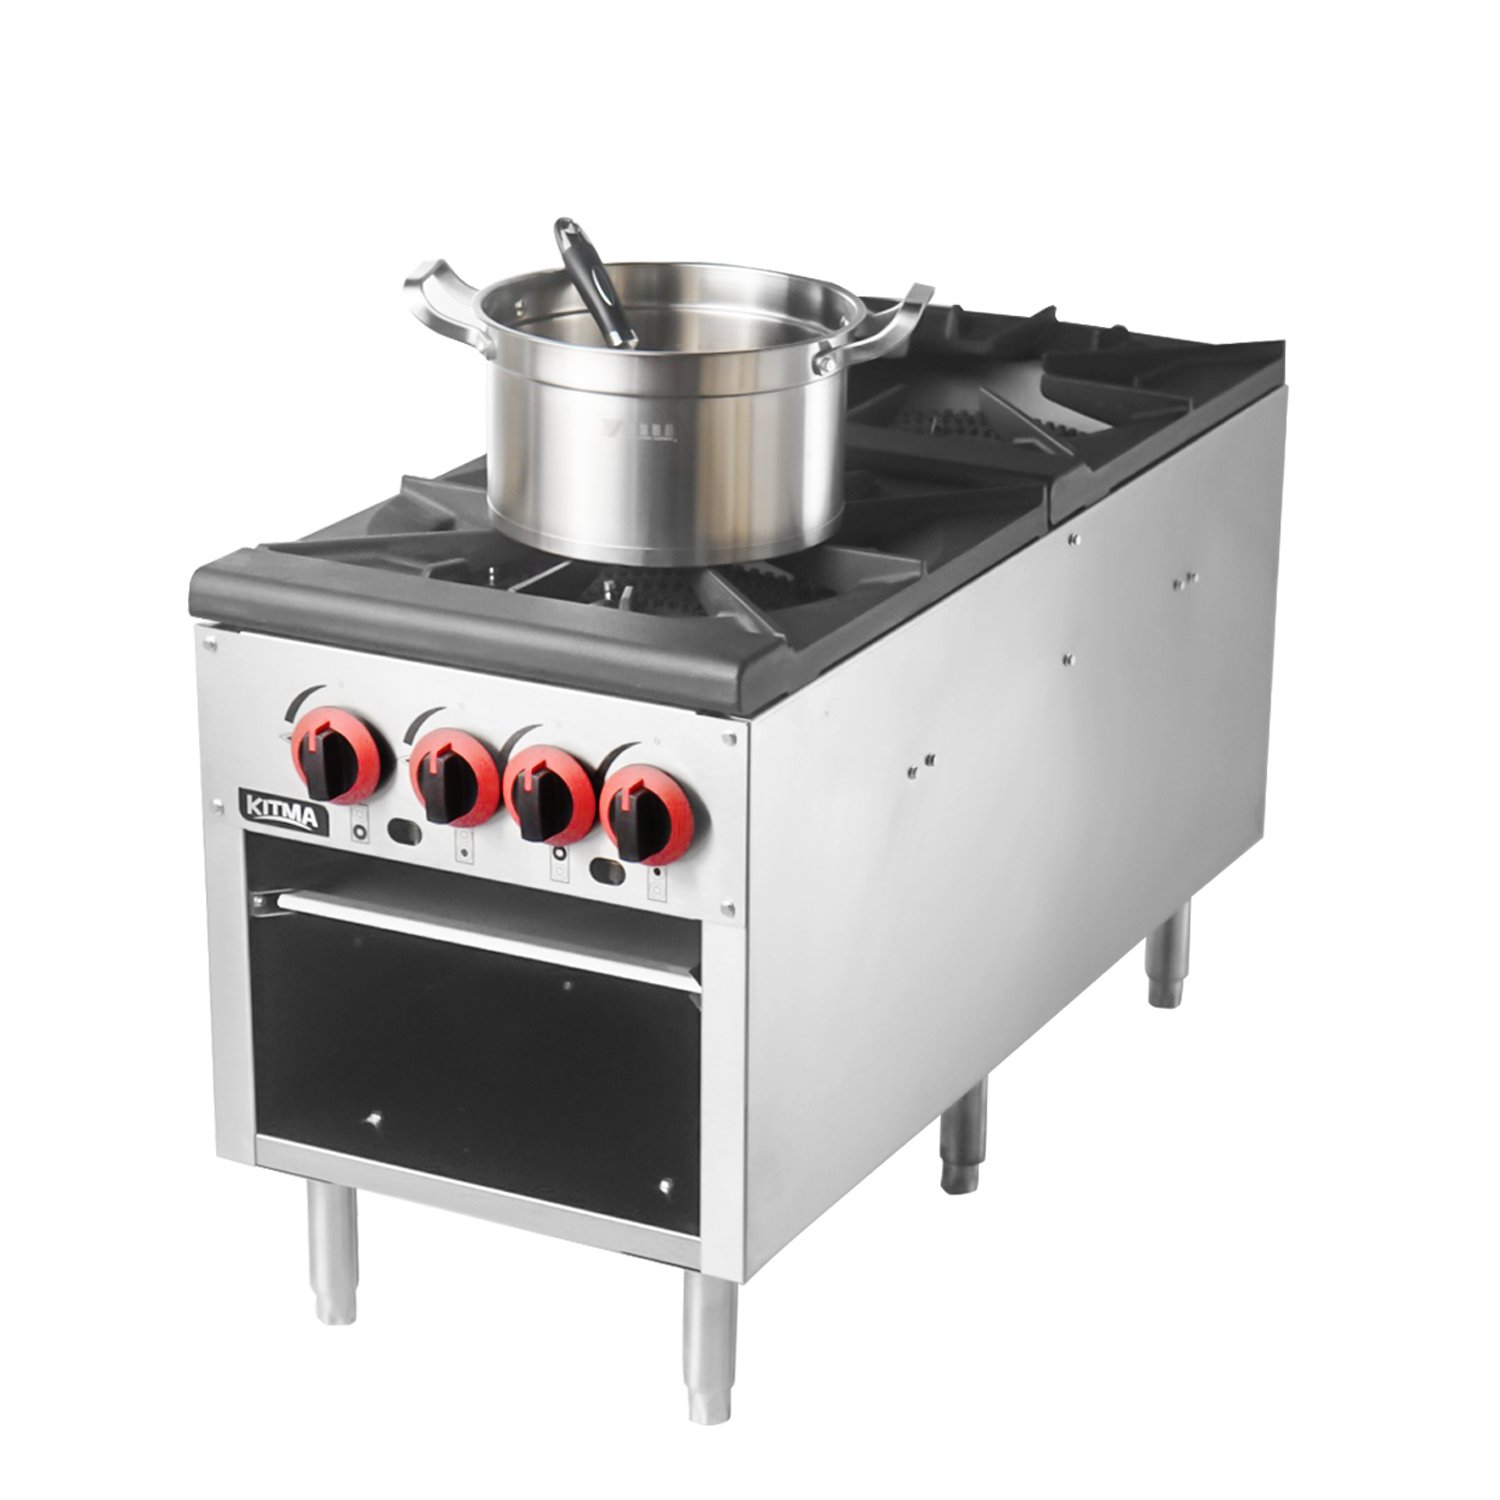 18 Inches 2 Stock Pot Stove - KITMA Natural Gas Countertop Stock Pot Range with 4 Manual Controls - Restaurant Equipment for Soups